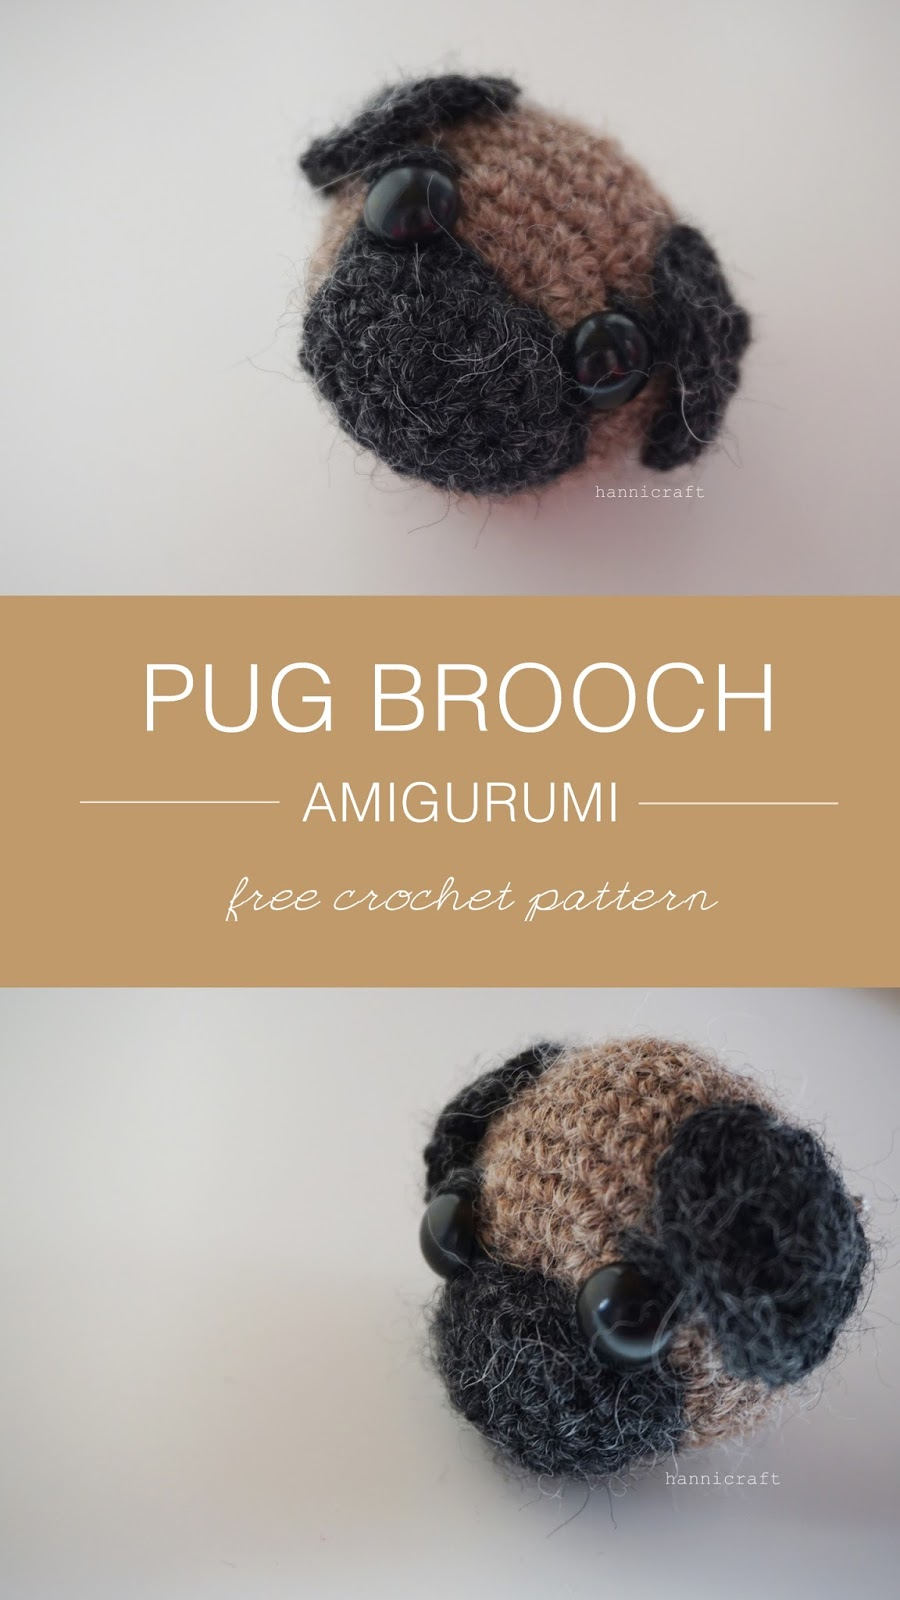 pug+brooch+hannicraft.jpg